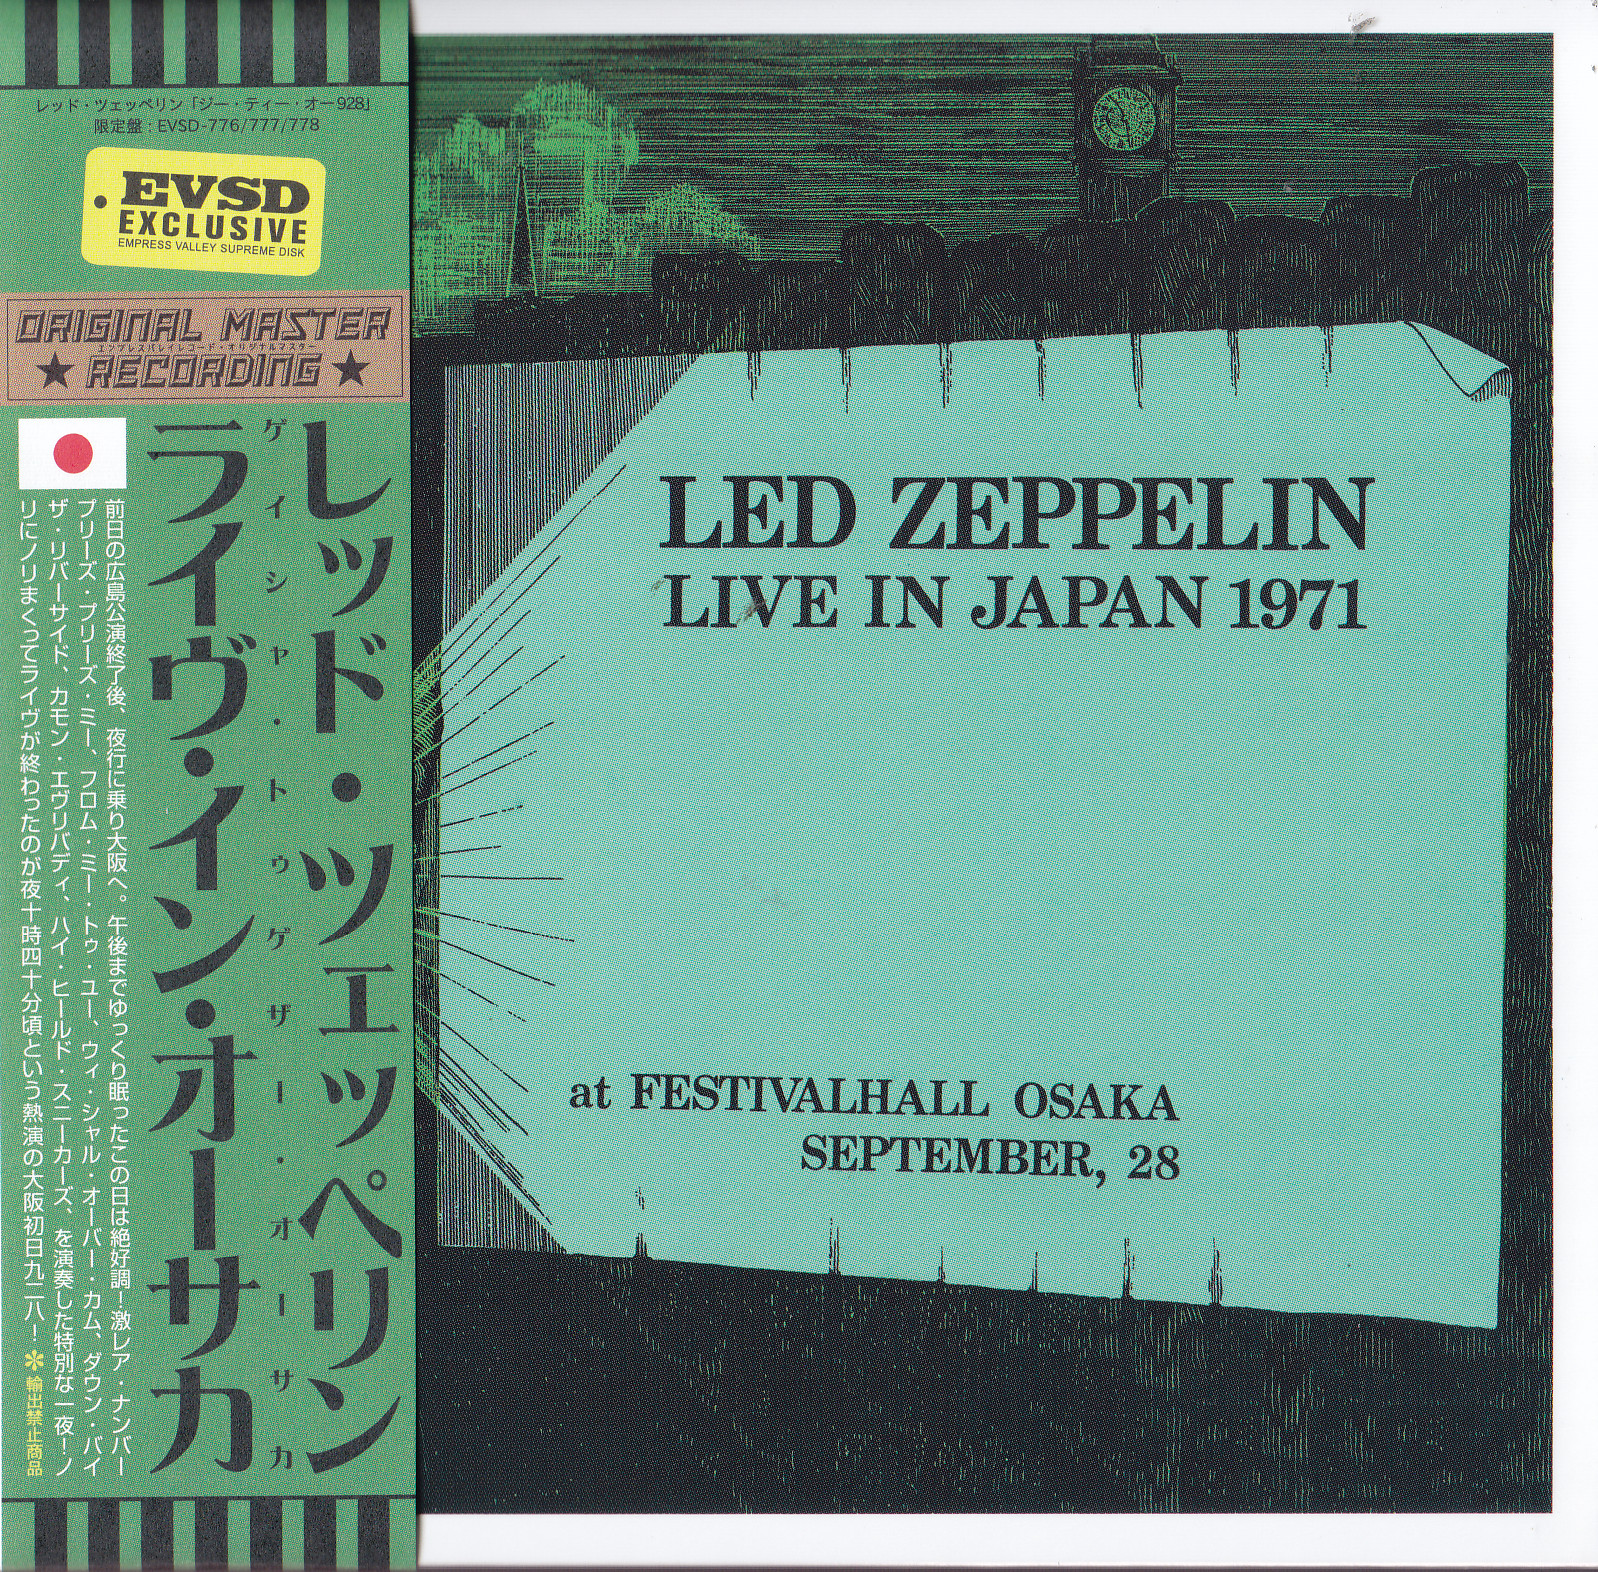 Led Zeppelin / Live In Japan 1971 / 6CD Box Set – GiGinJapan